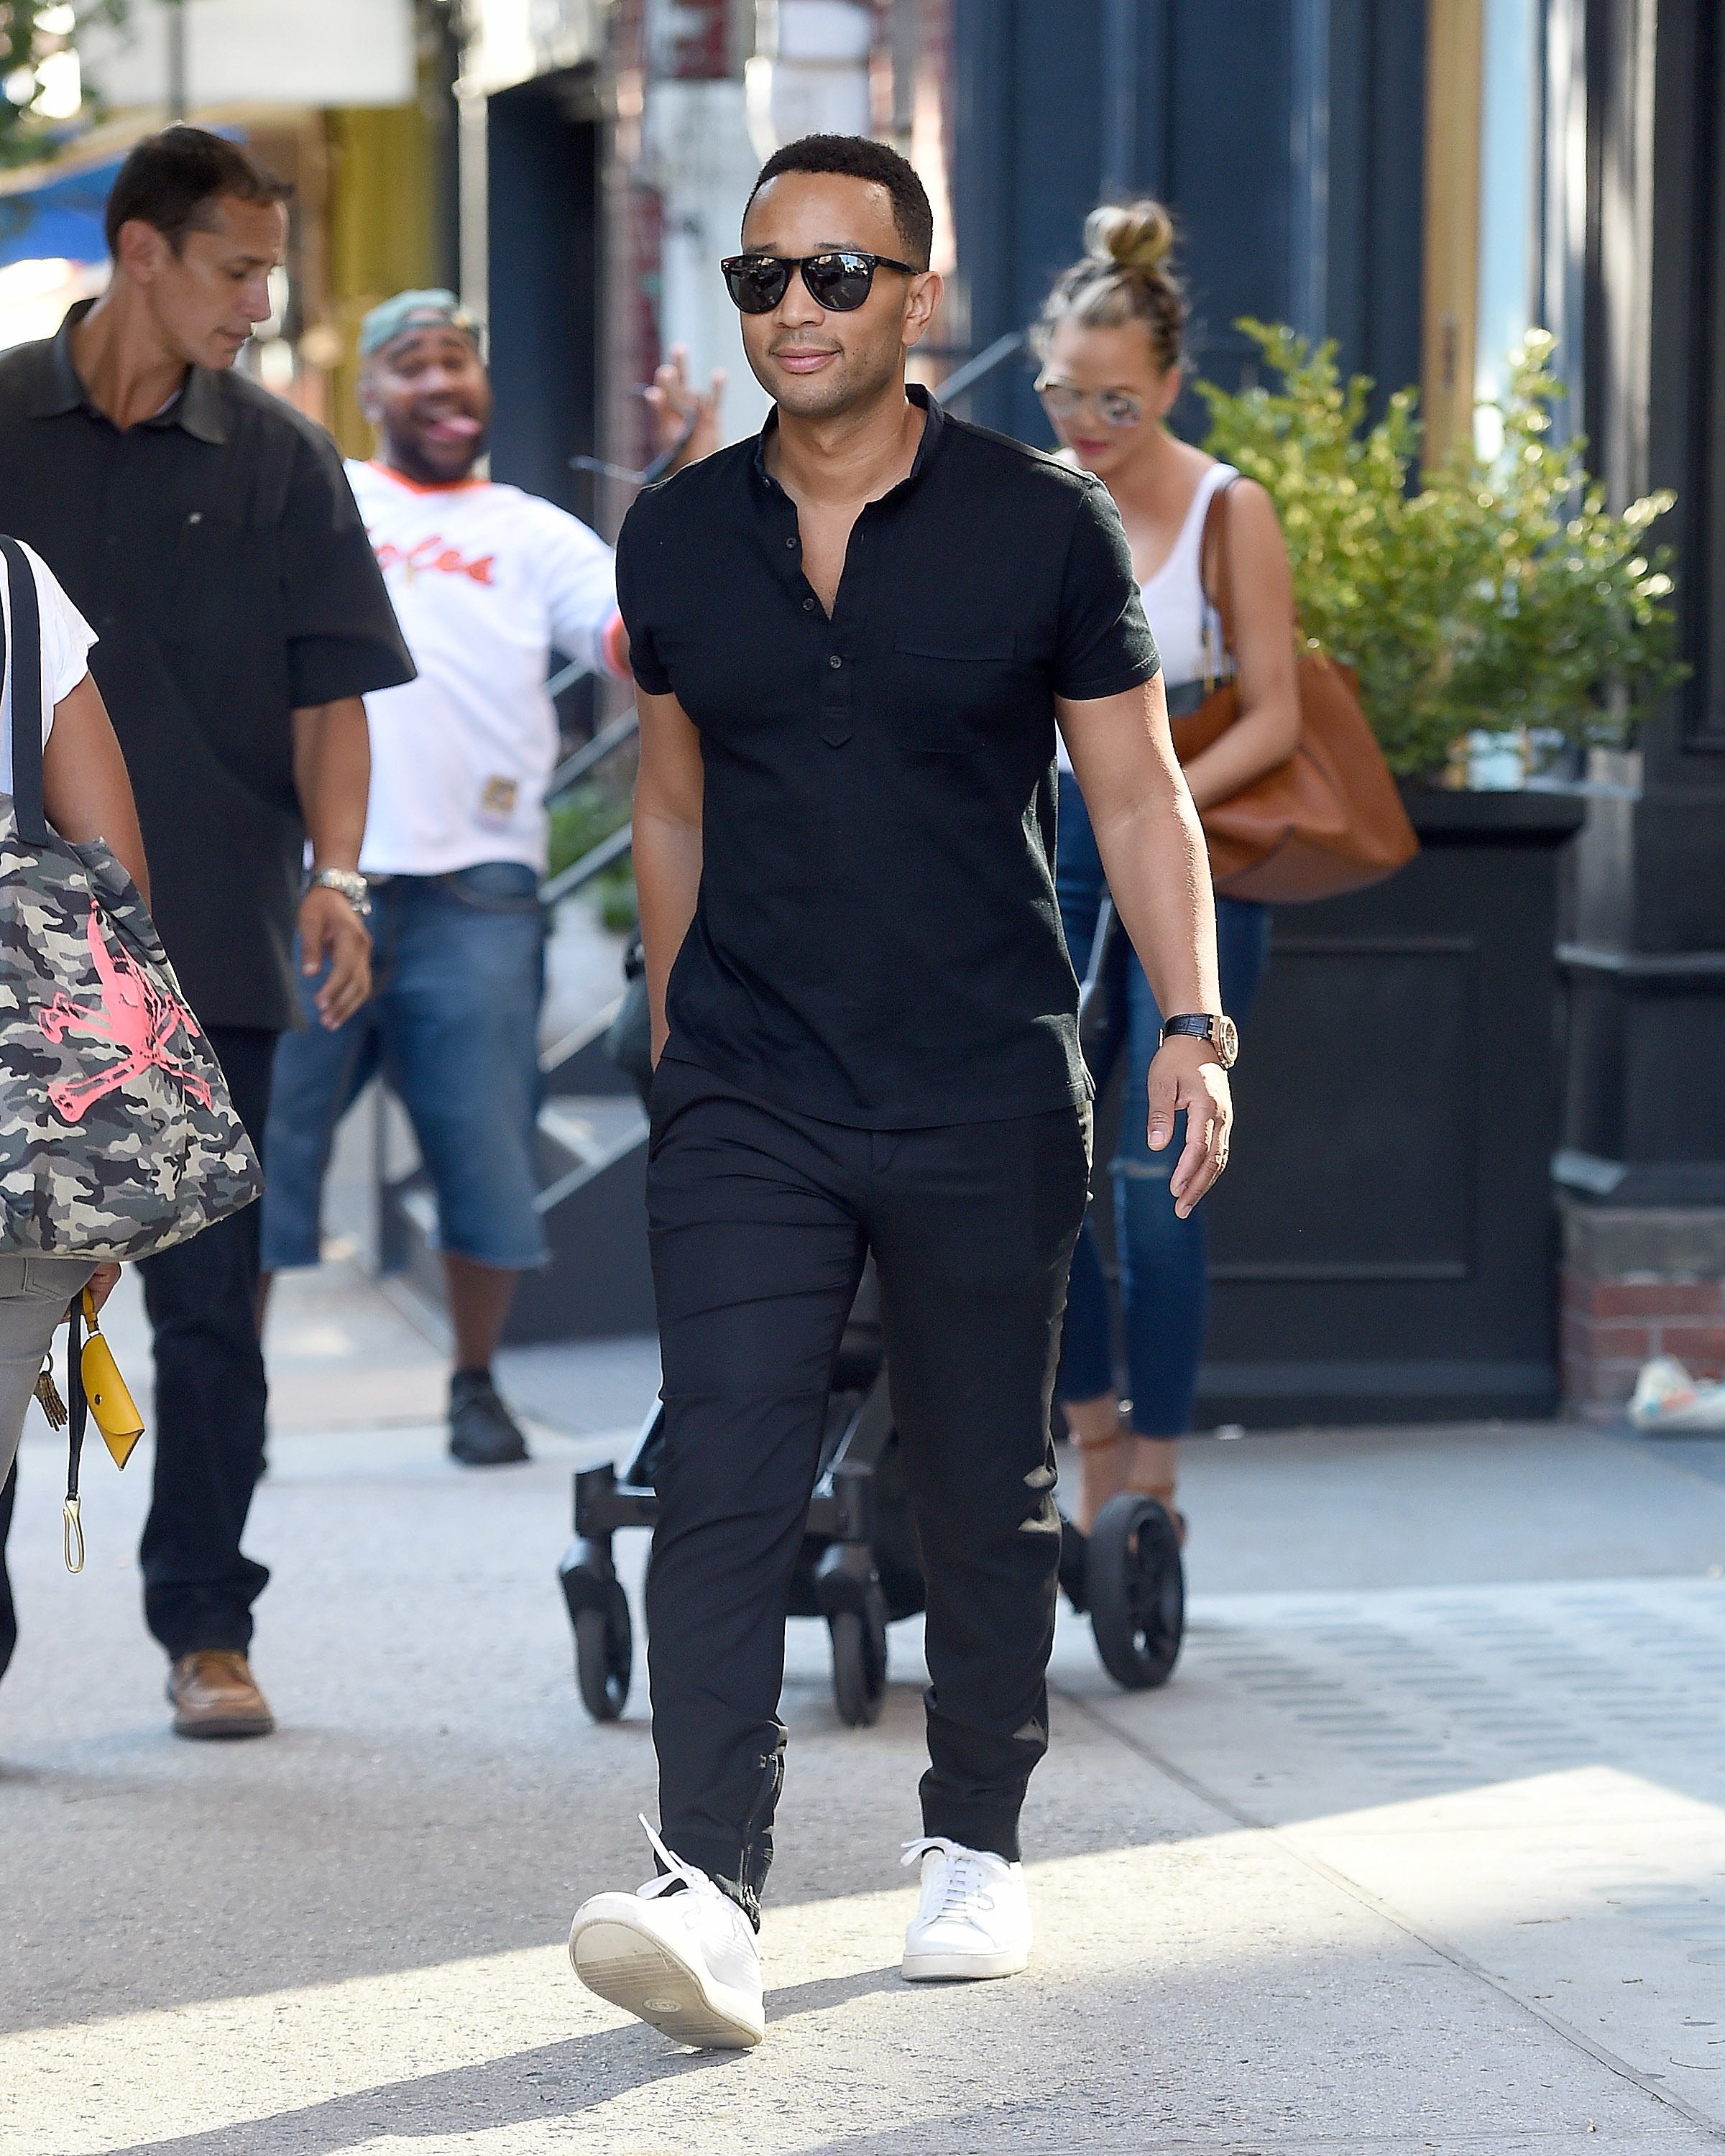 While John Legend was smart to forgo dad jeans for far cooler chinos with an unexpected exposed zipper hem details, featuring his Tom Ford sneakers